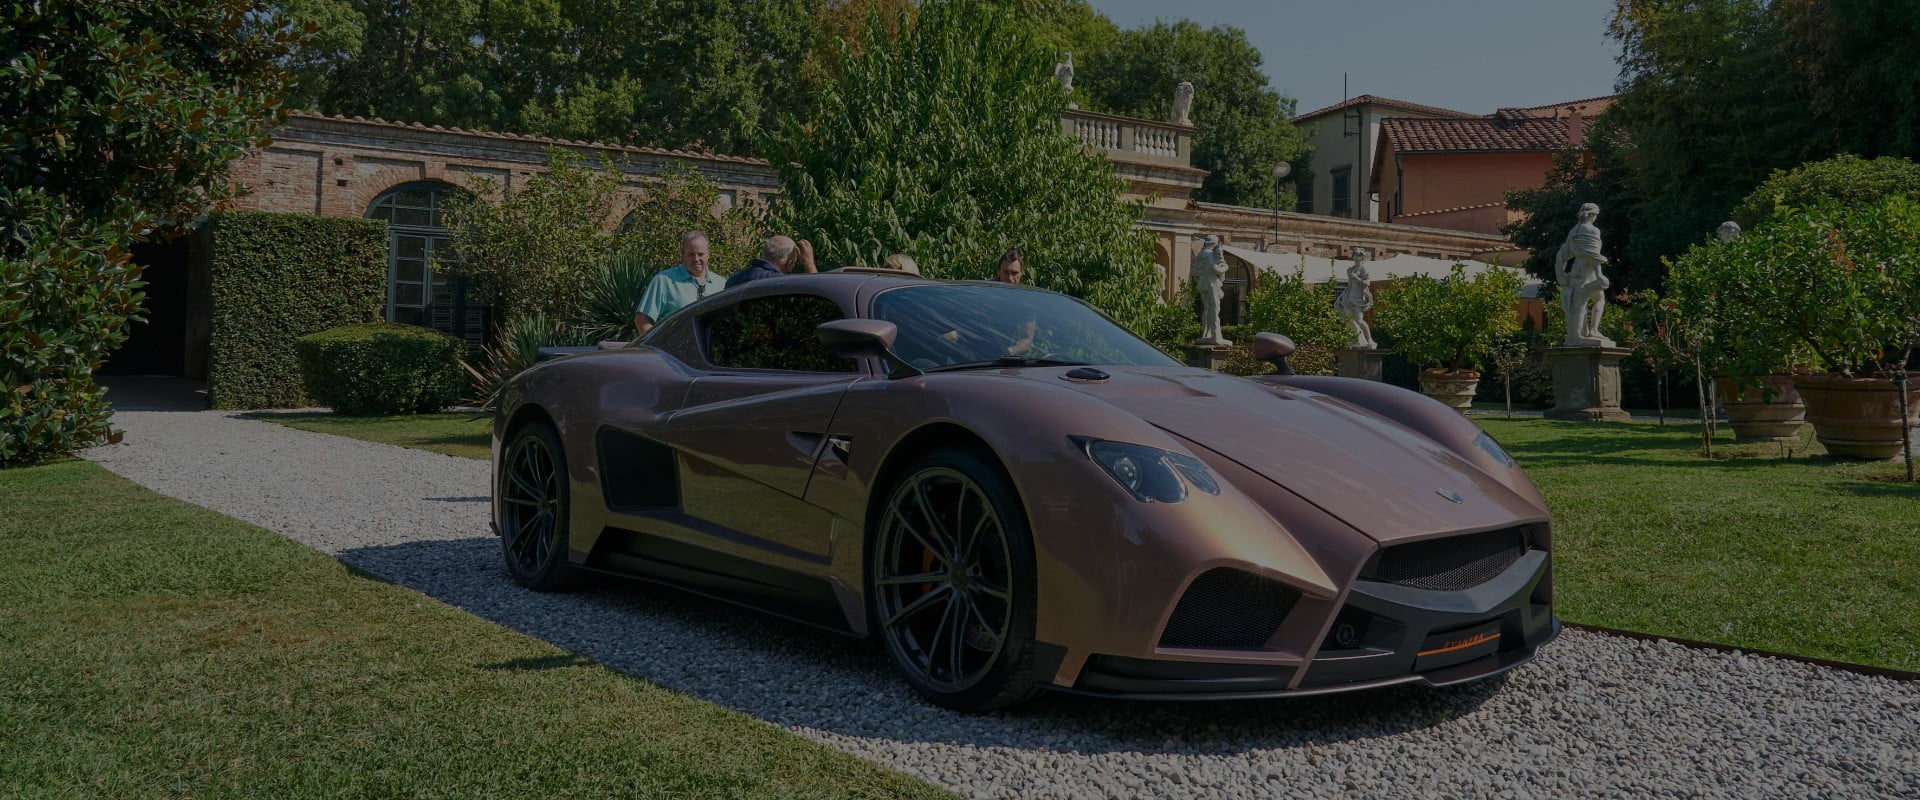 EVANTRA AT PALAZZO PFANNER WITH ANDREA BOCELLI